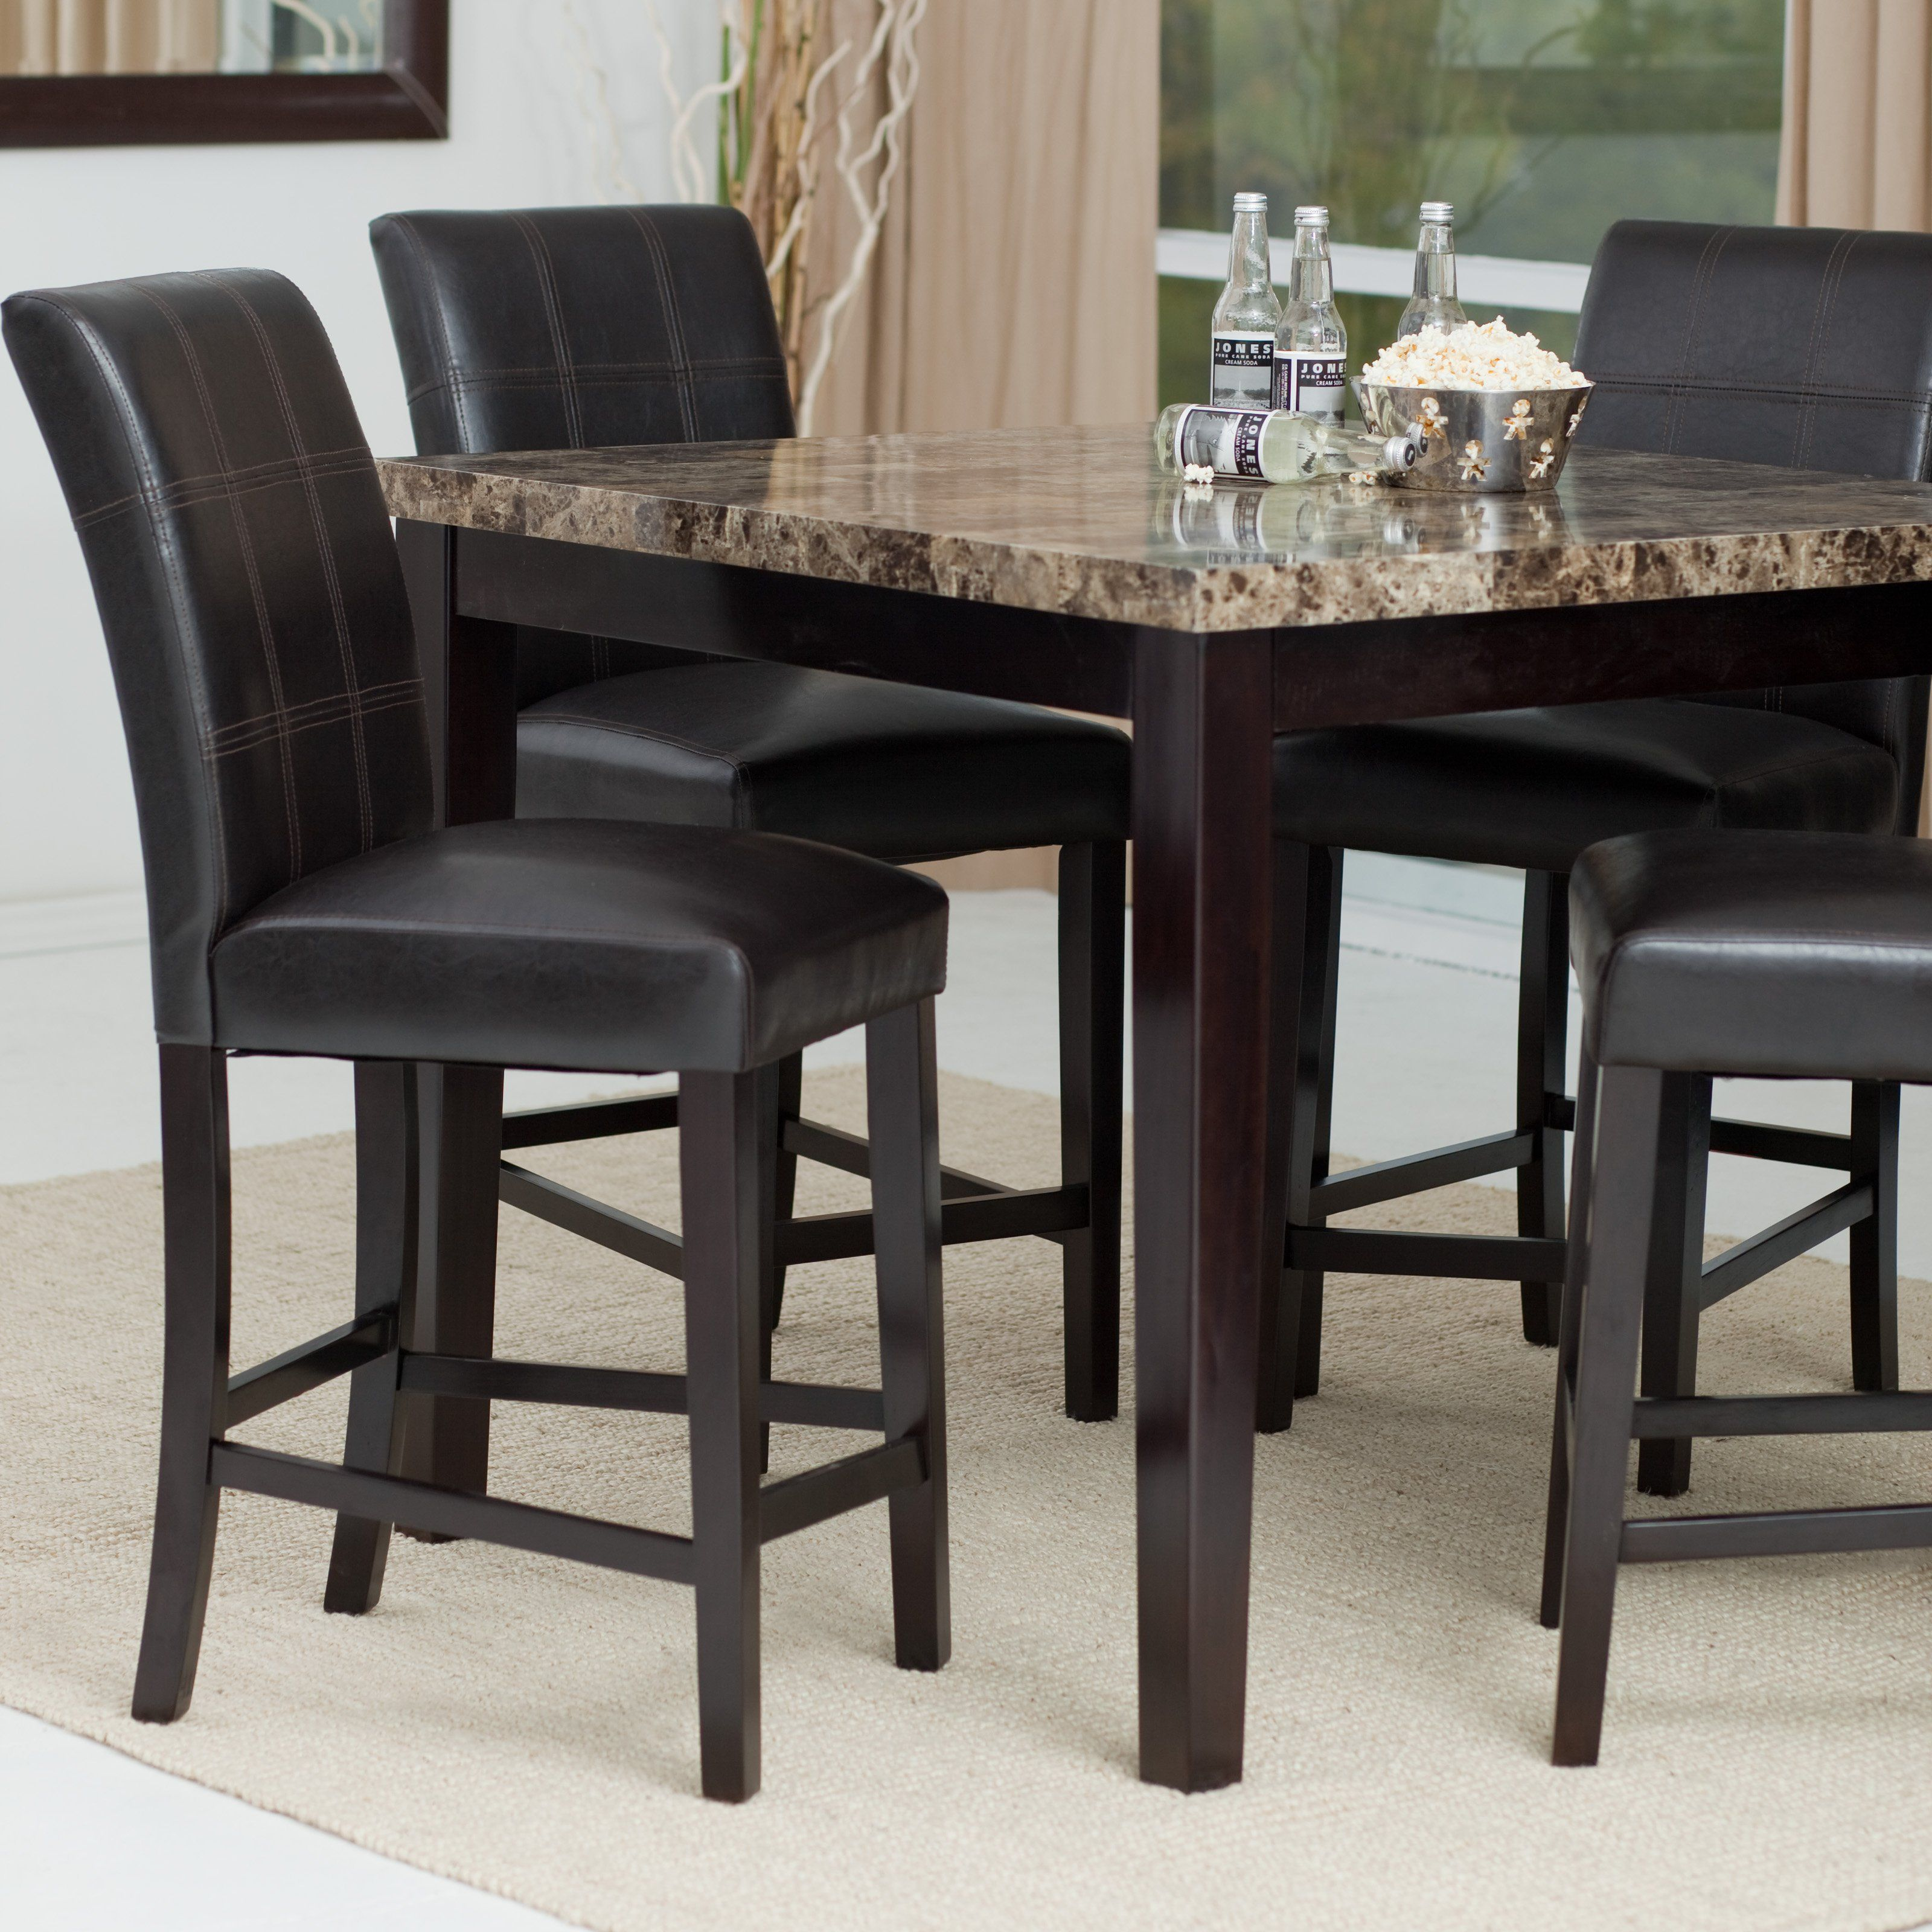 Beautiful High Top Dining Room Sets Gallery   Rugoingmyway.us    Rugoingmyway.us